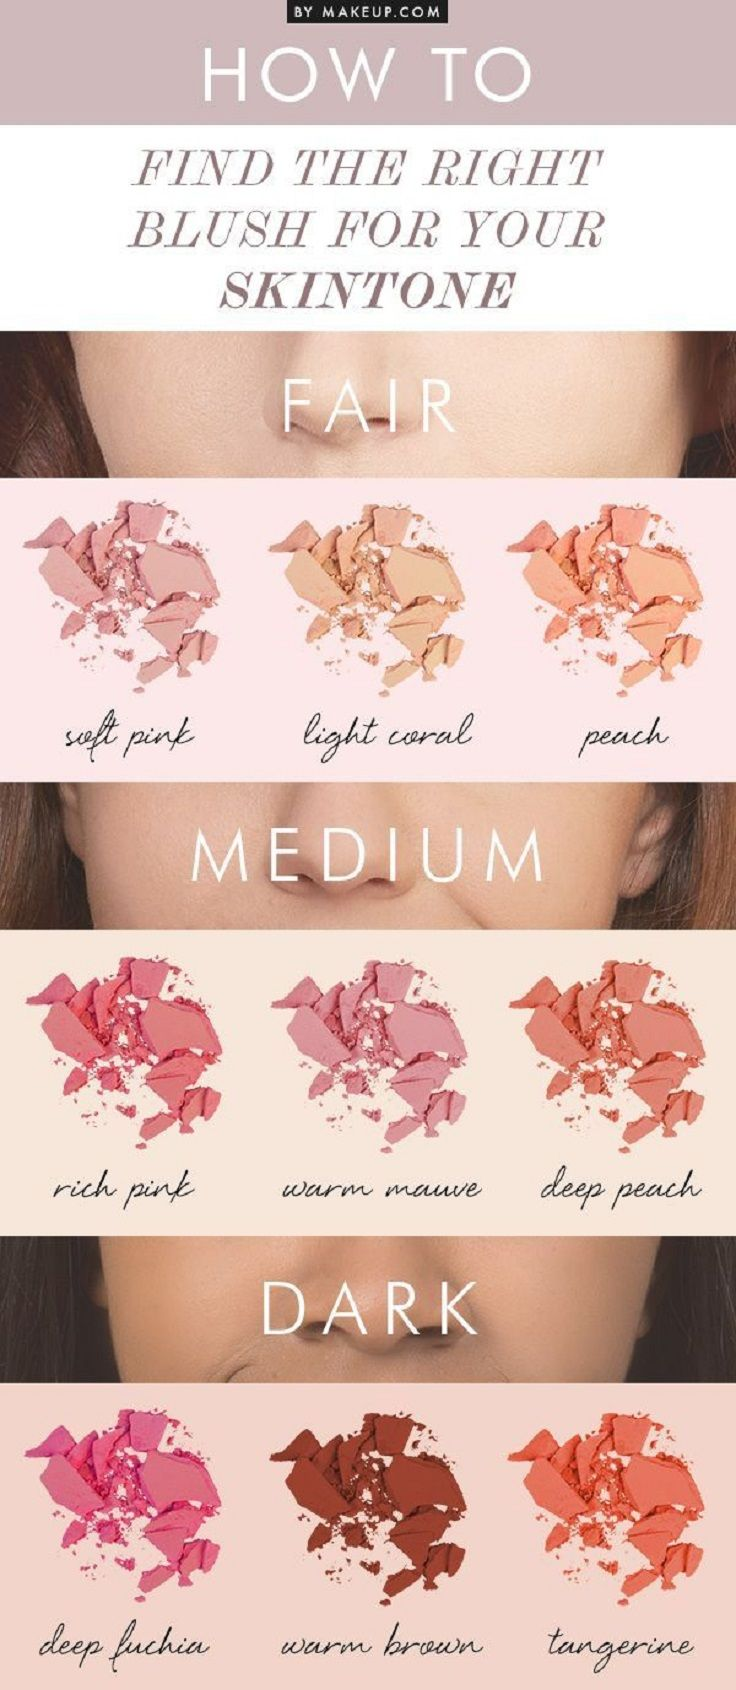 Find The Right Blush For Your Skintone - 13 Best Makeup Tutorials and Infographi...